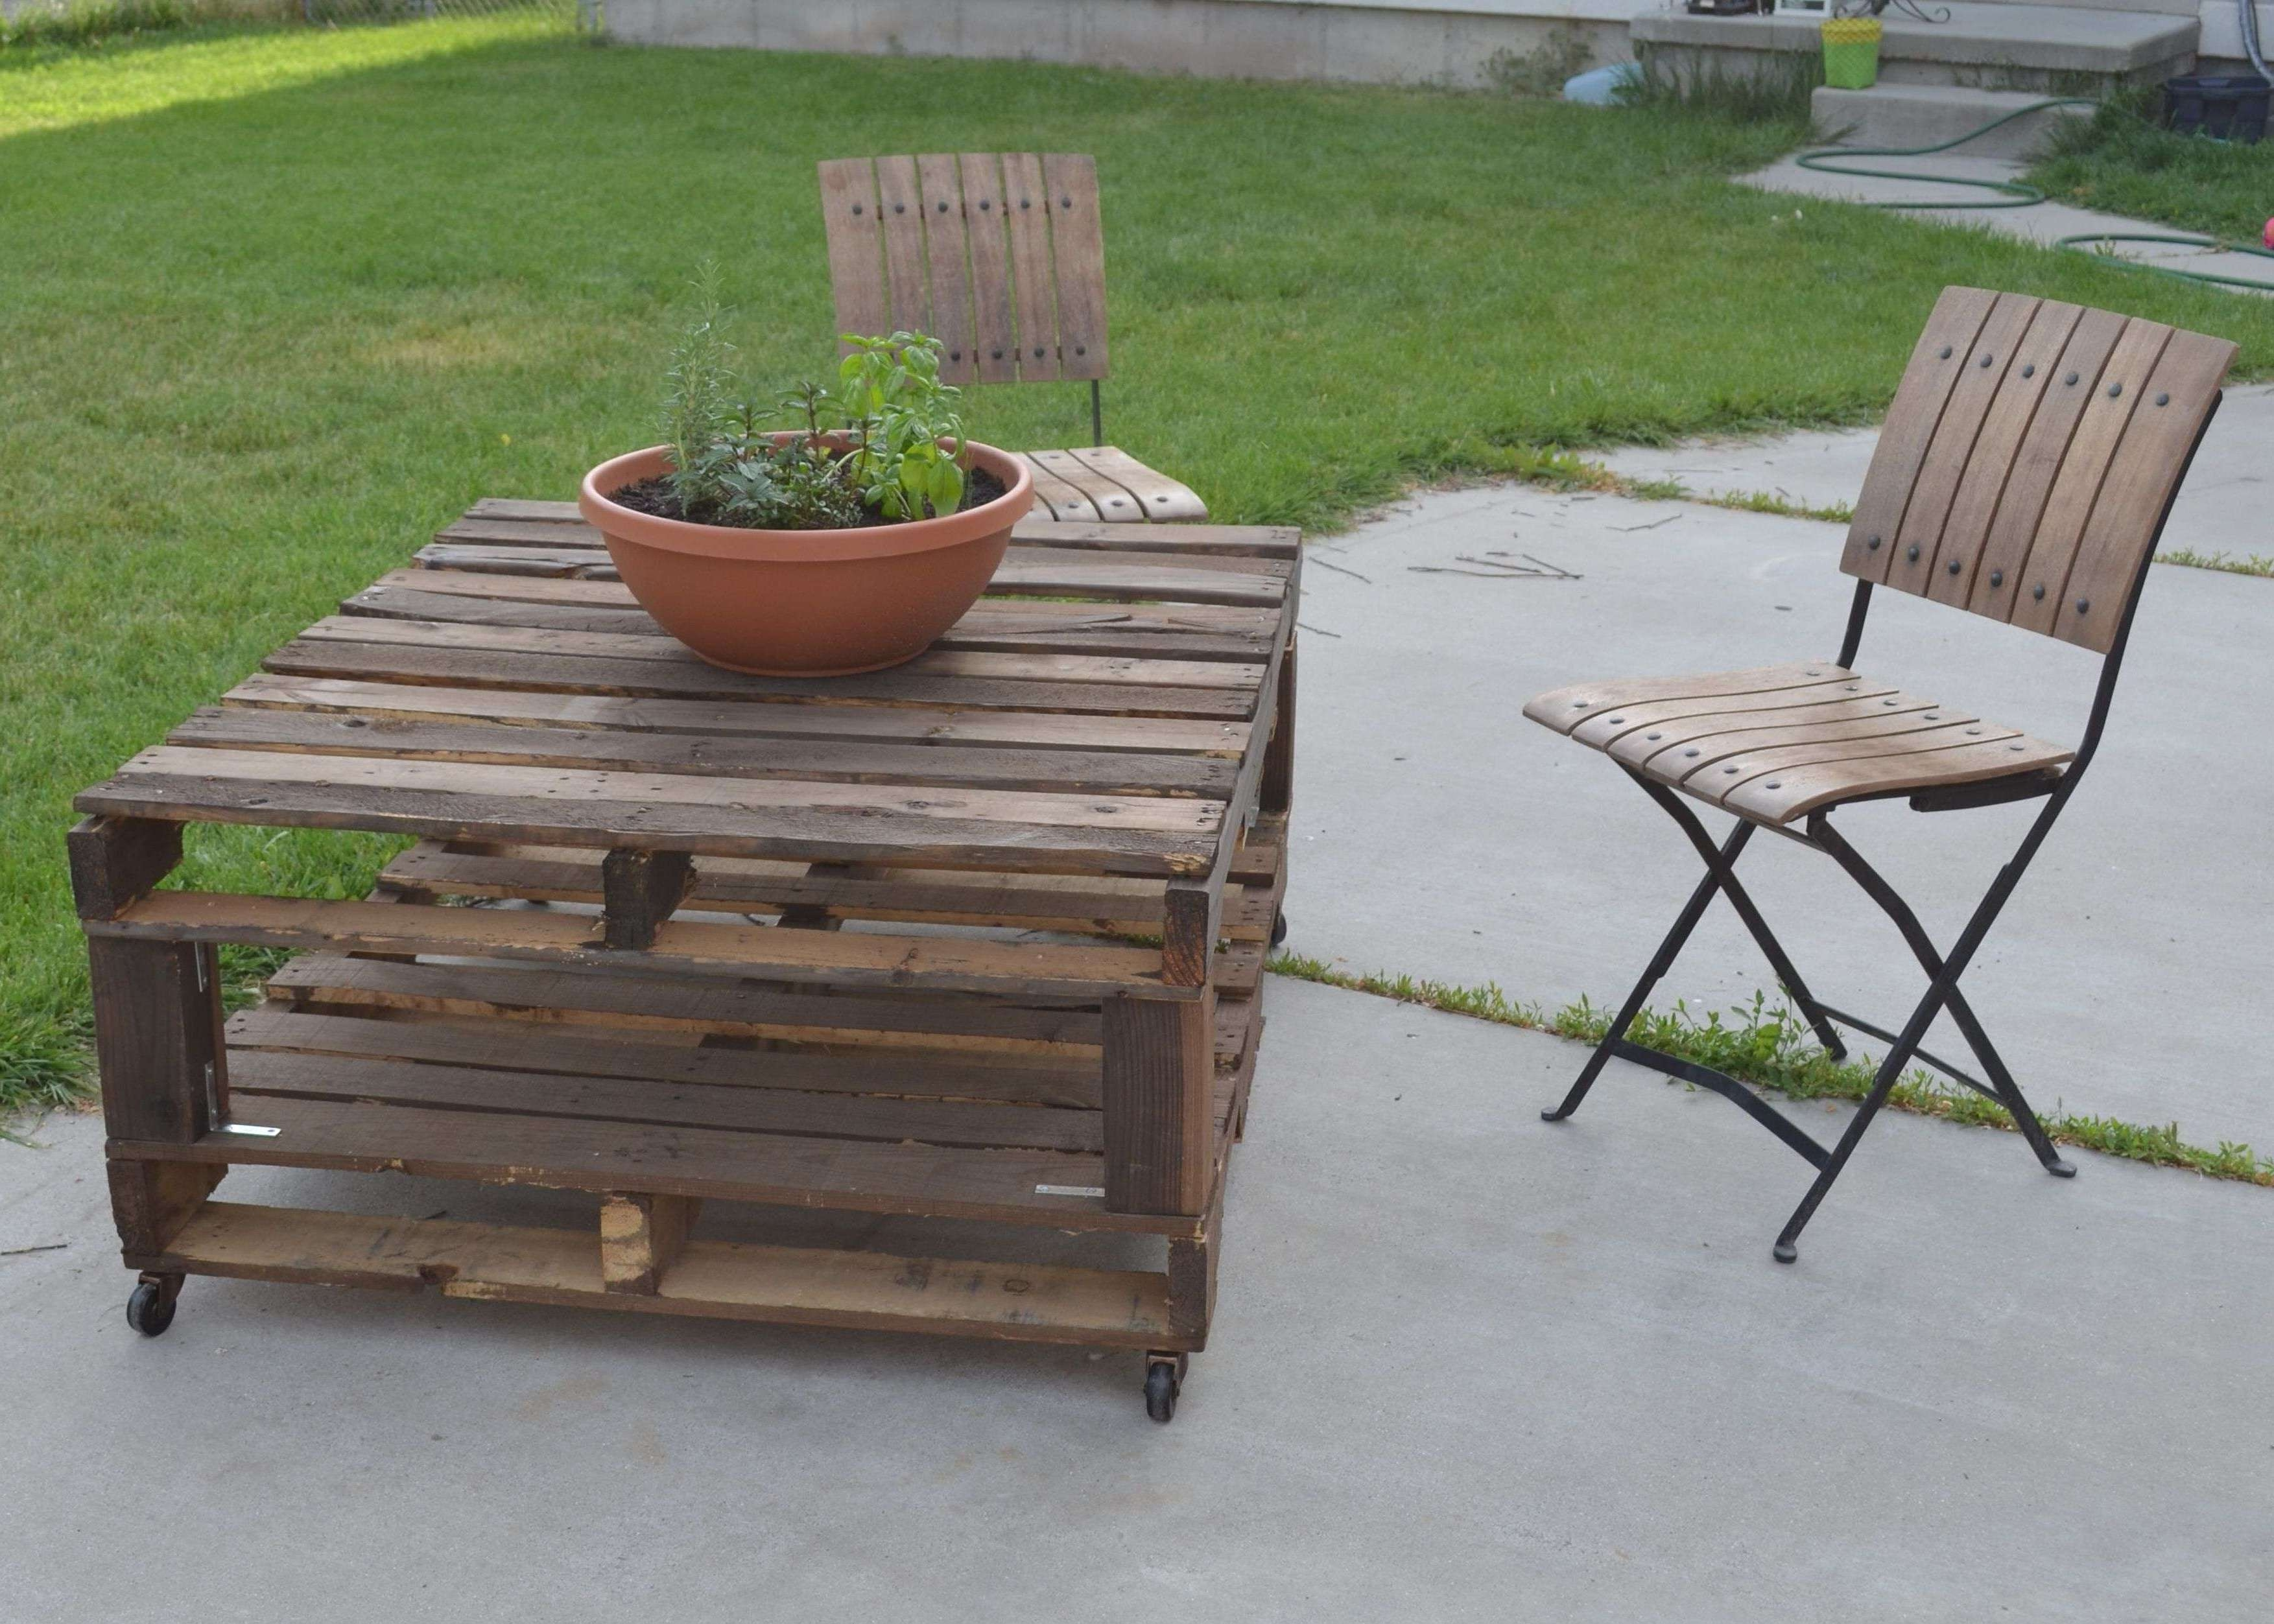 Diy Outdoor Wood Coffee Table Using Reclaimed Wood And Wheels With With Recent Low Coffee Table With Storage (View 10 of 20)